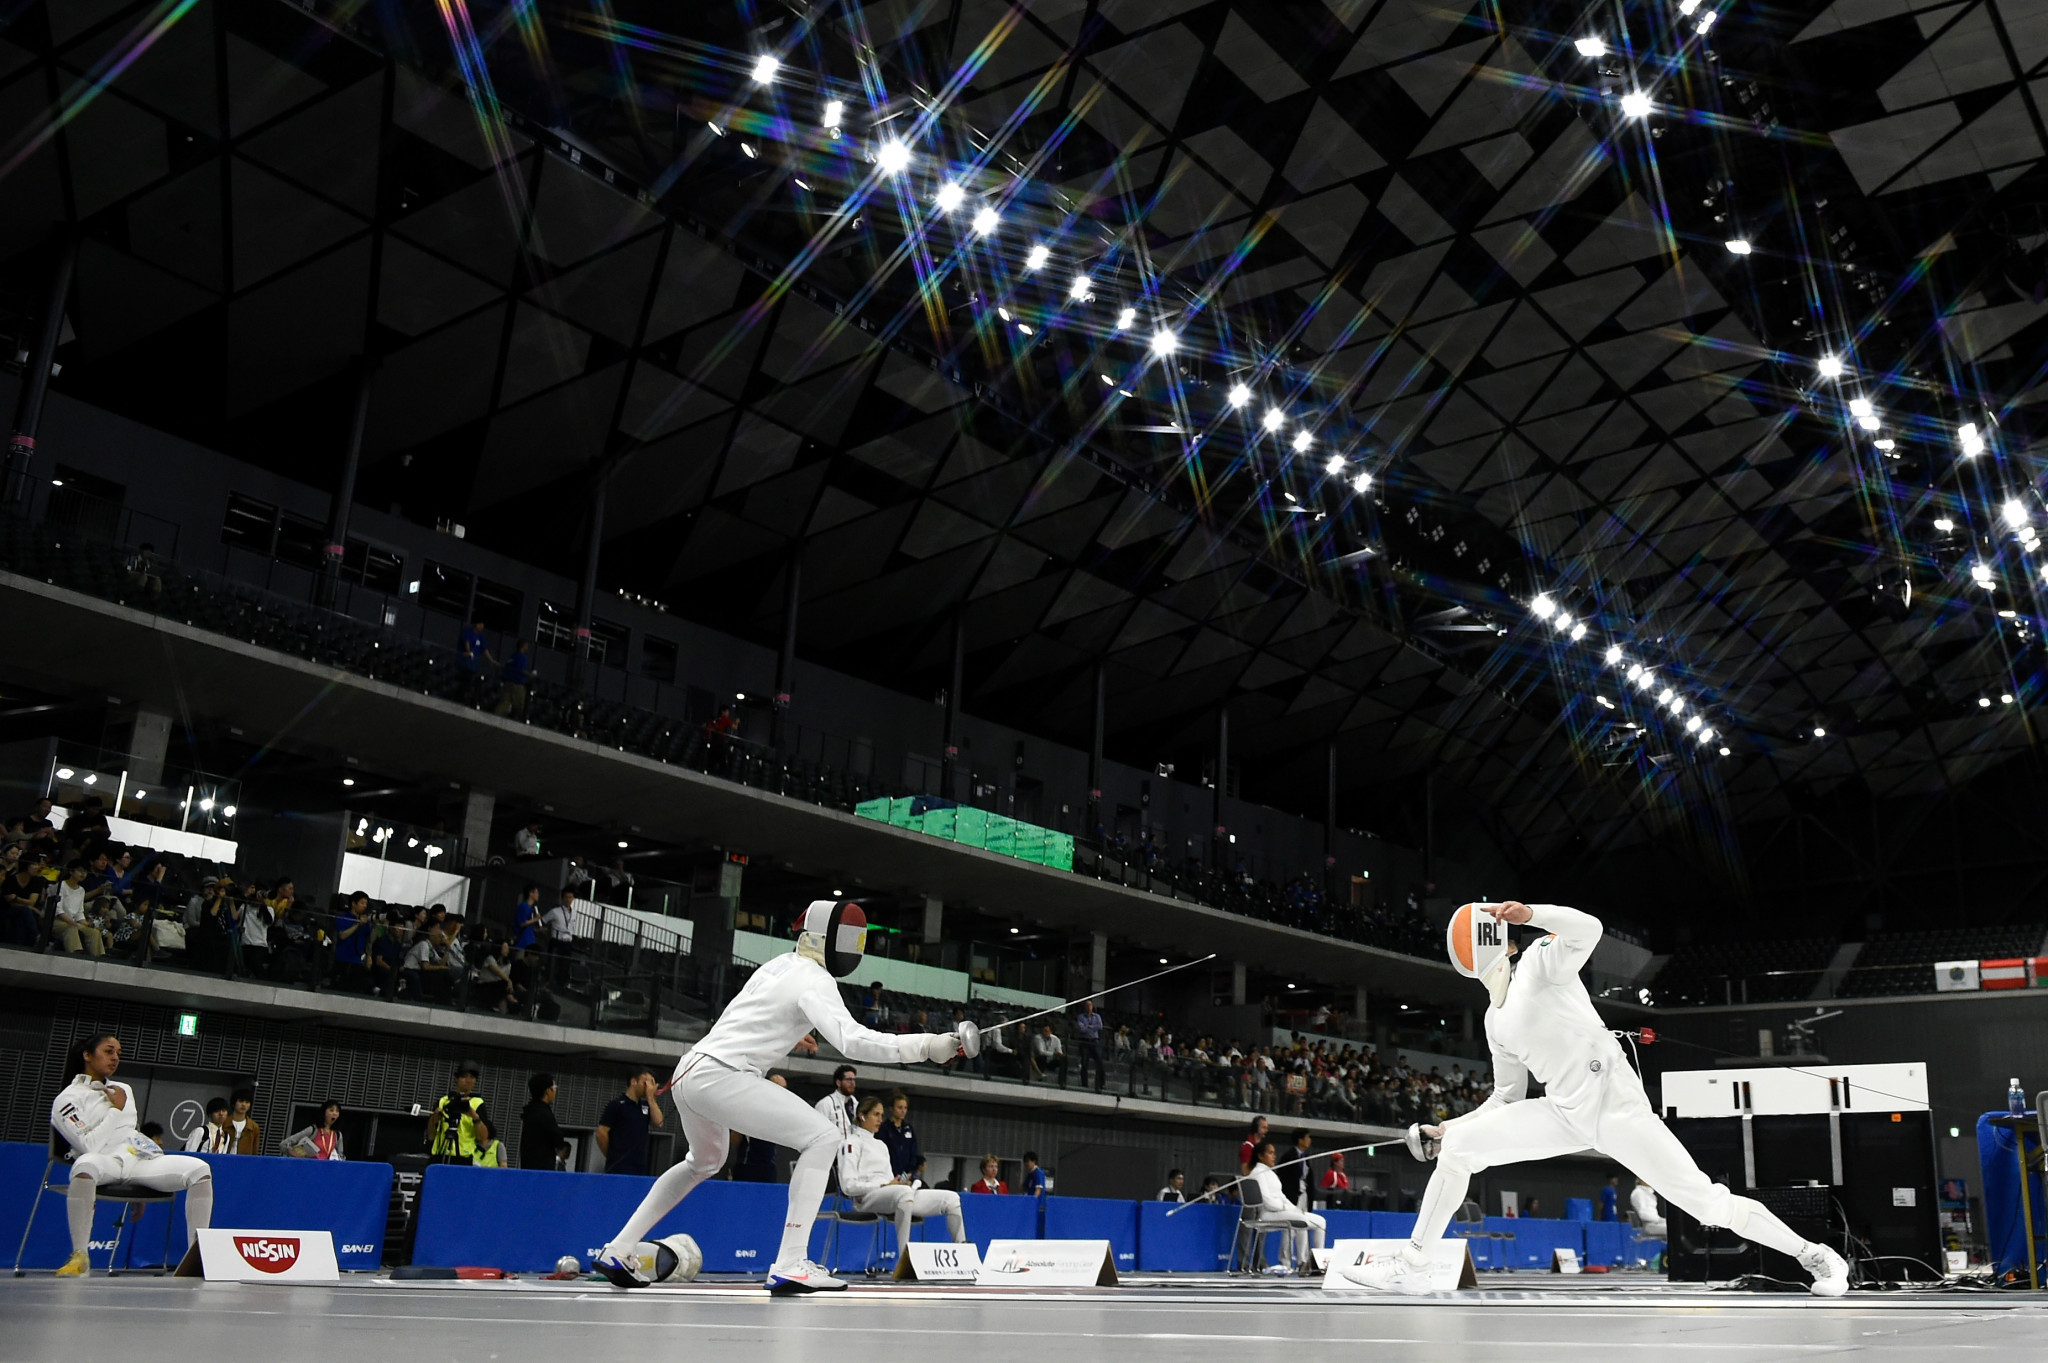 The 2021 modern pentathlon season is set to start with a World Cup in Budapest in March ©Getty Images